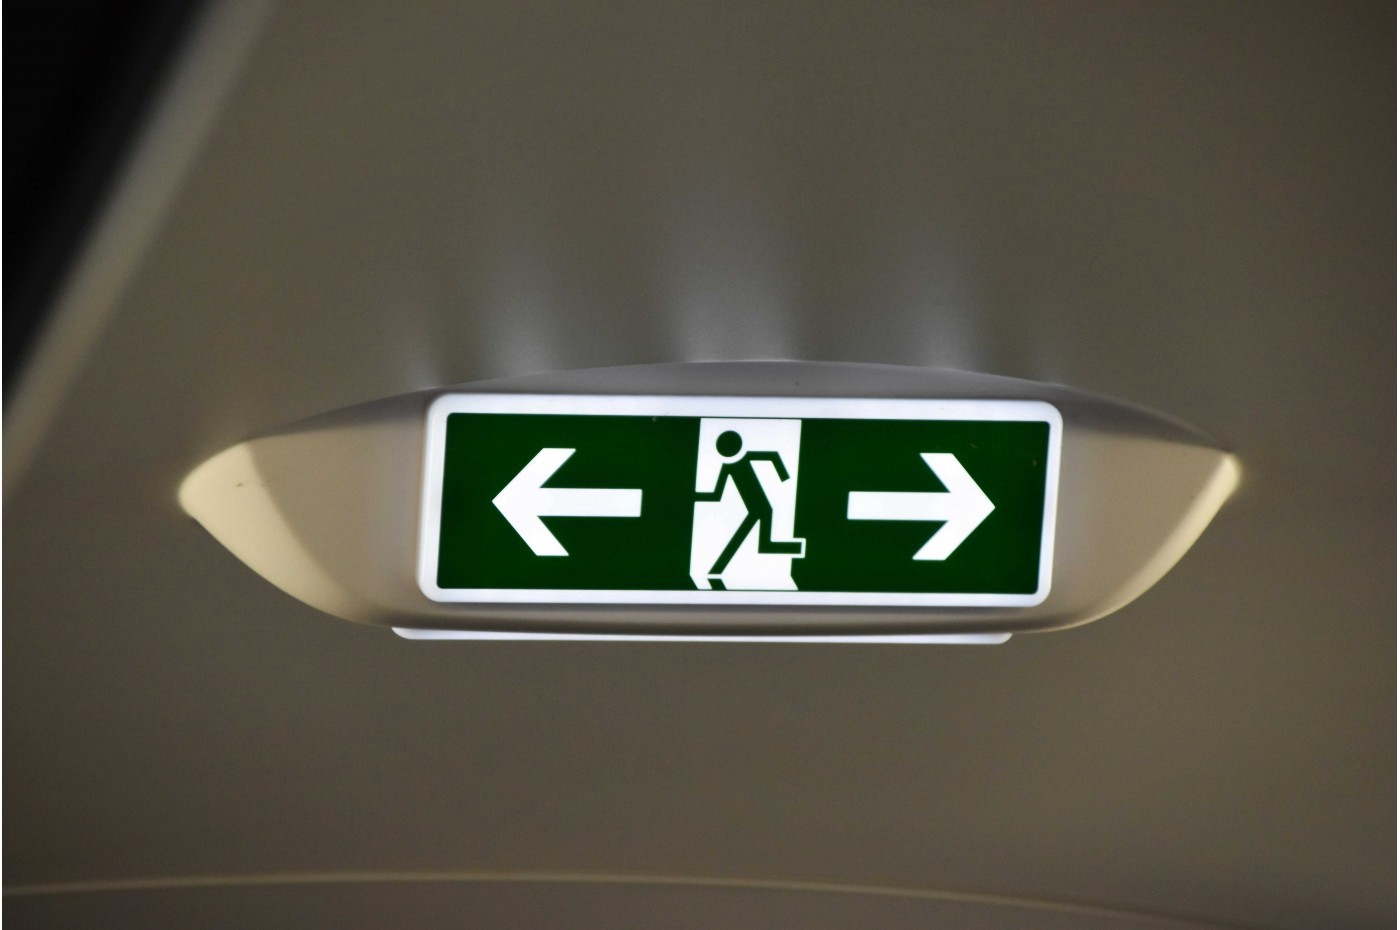 Sign pointing to emergency exits